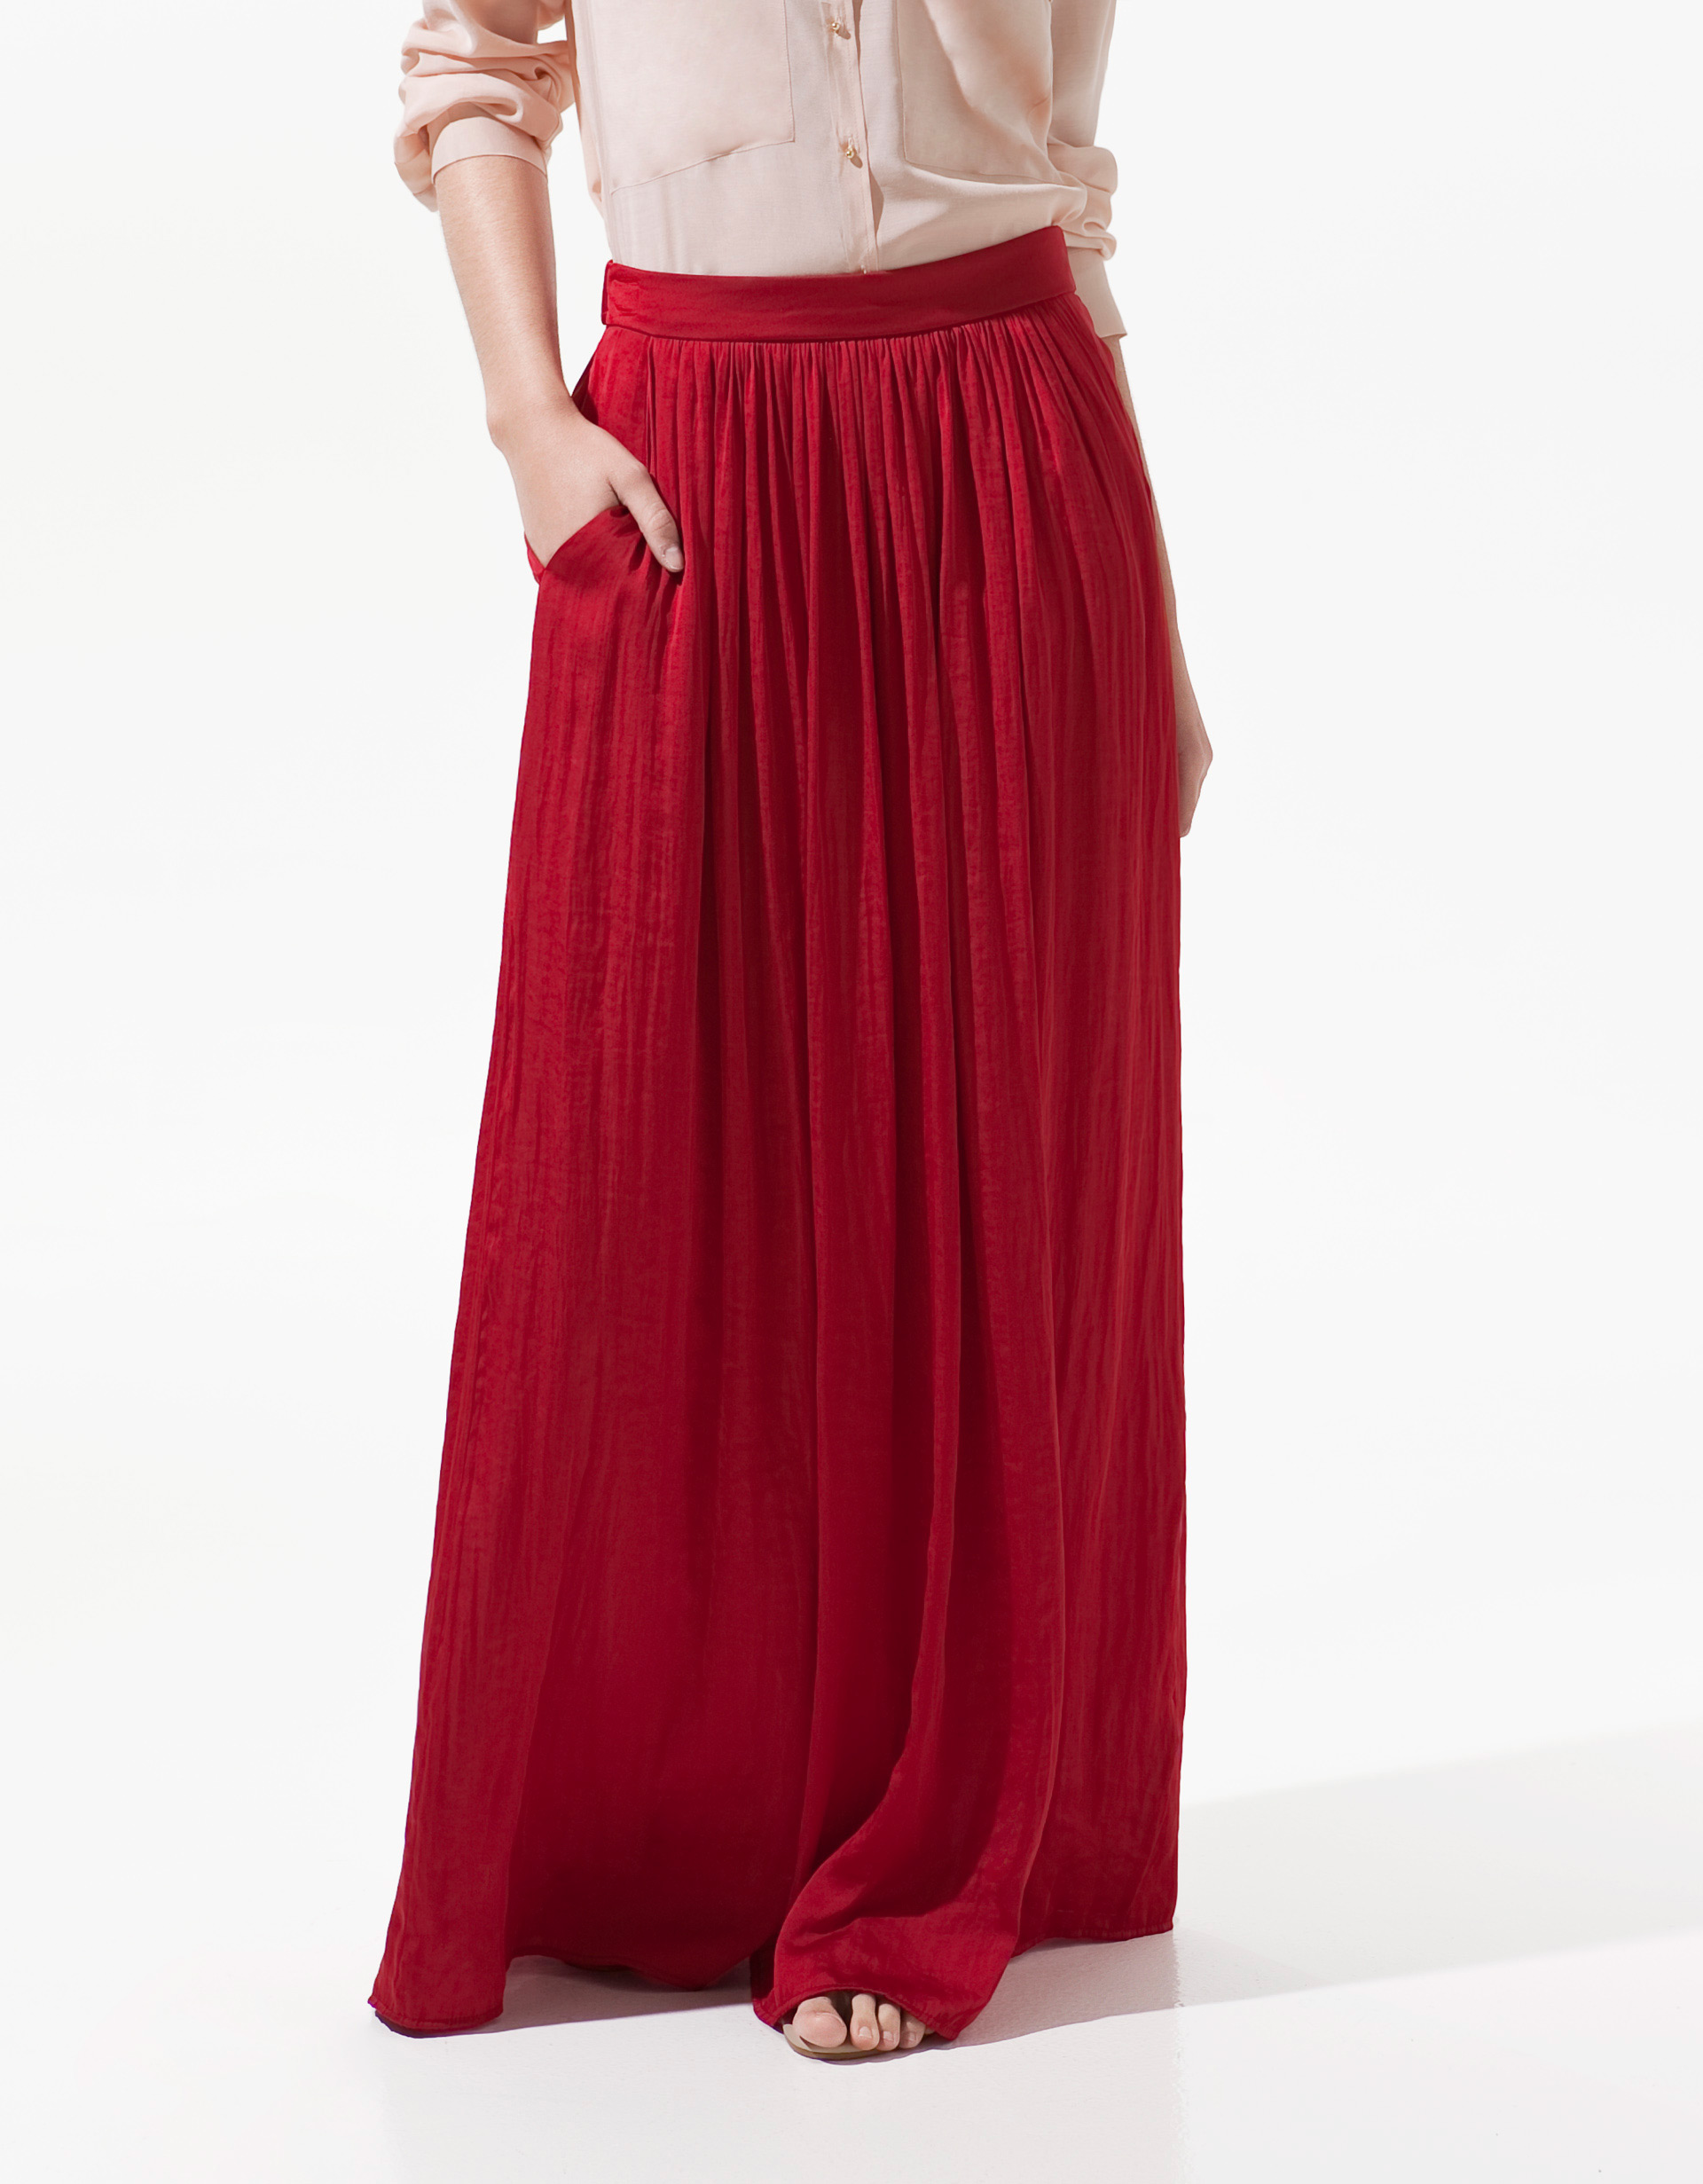 Zara Long Skirt with Pockets in Red | Lyst